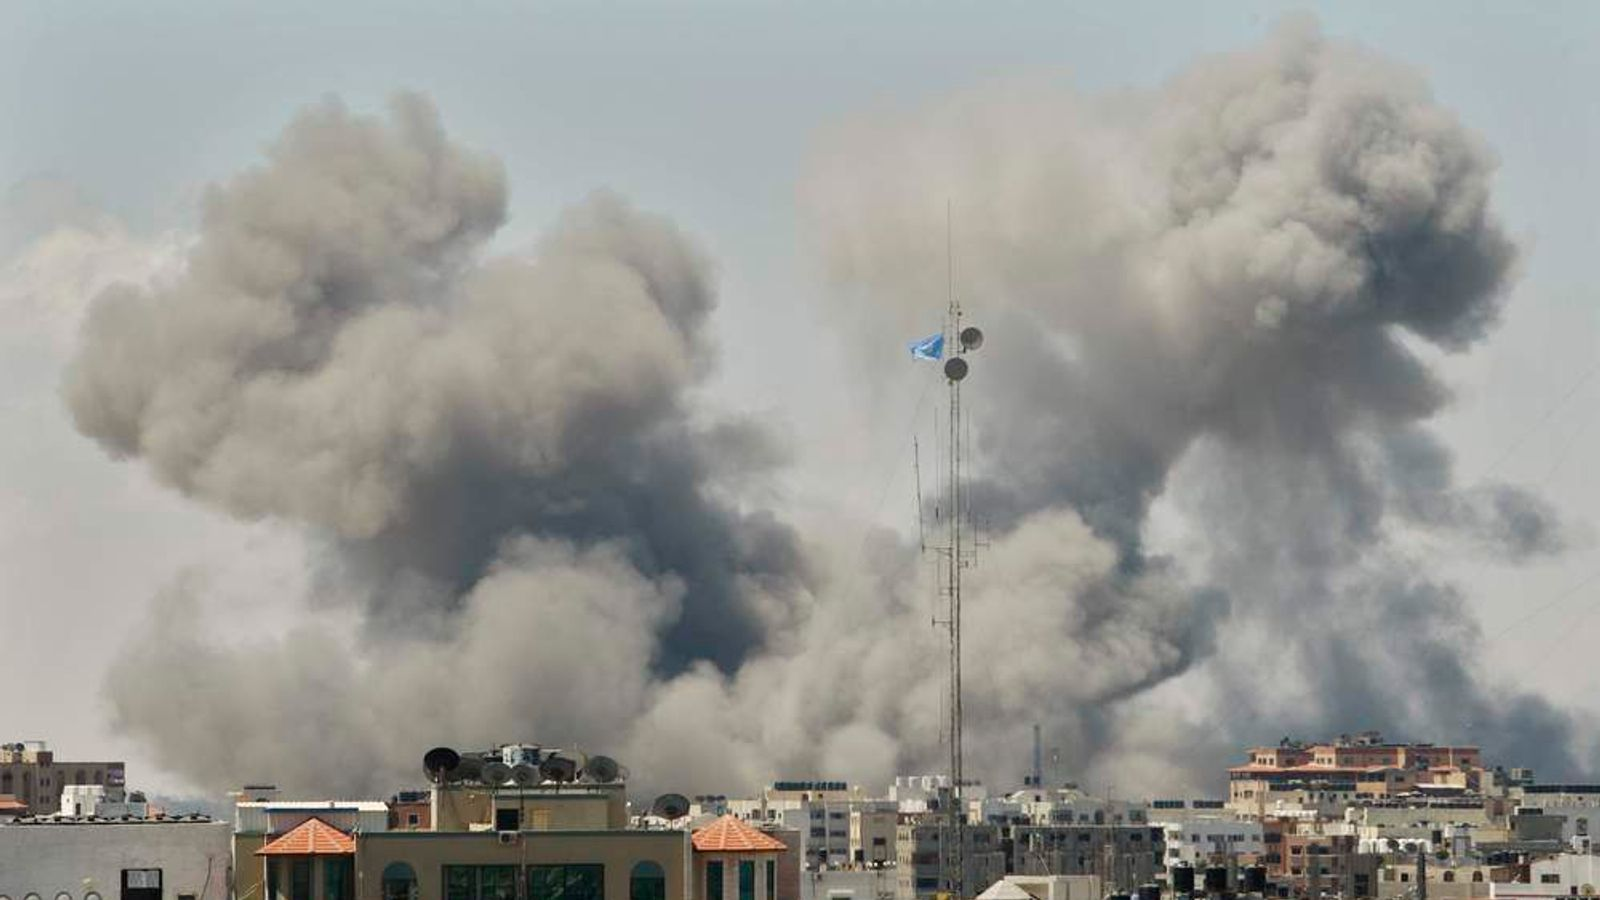 Smoke rises following what witnesses said were Israeli airstrikes in Gaza City